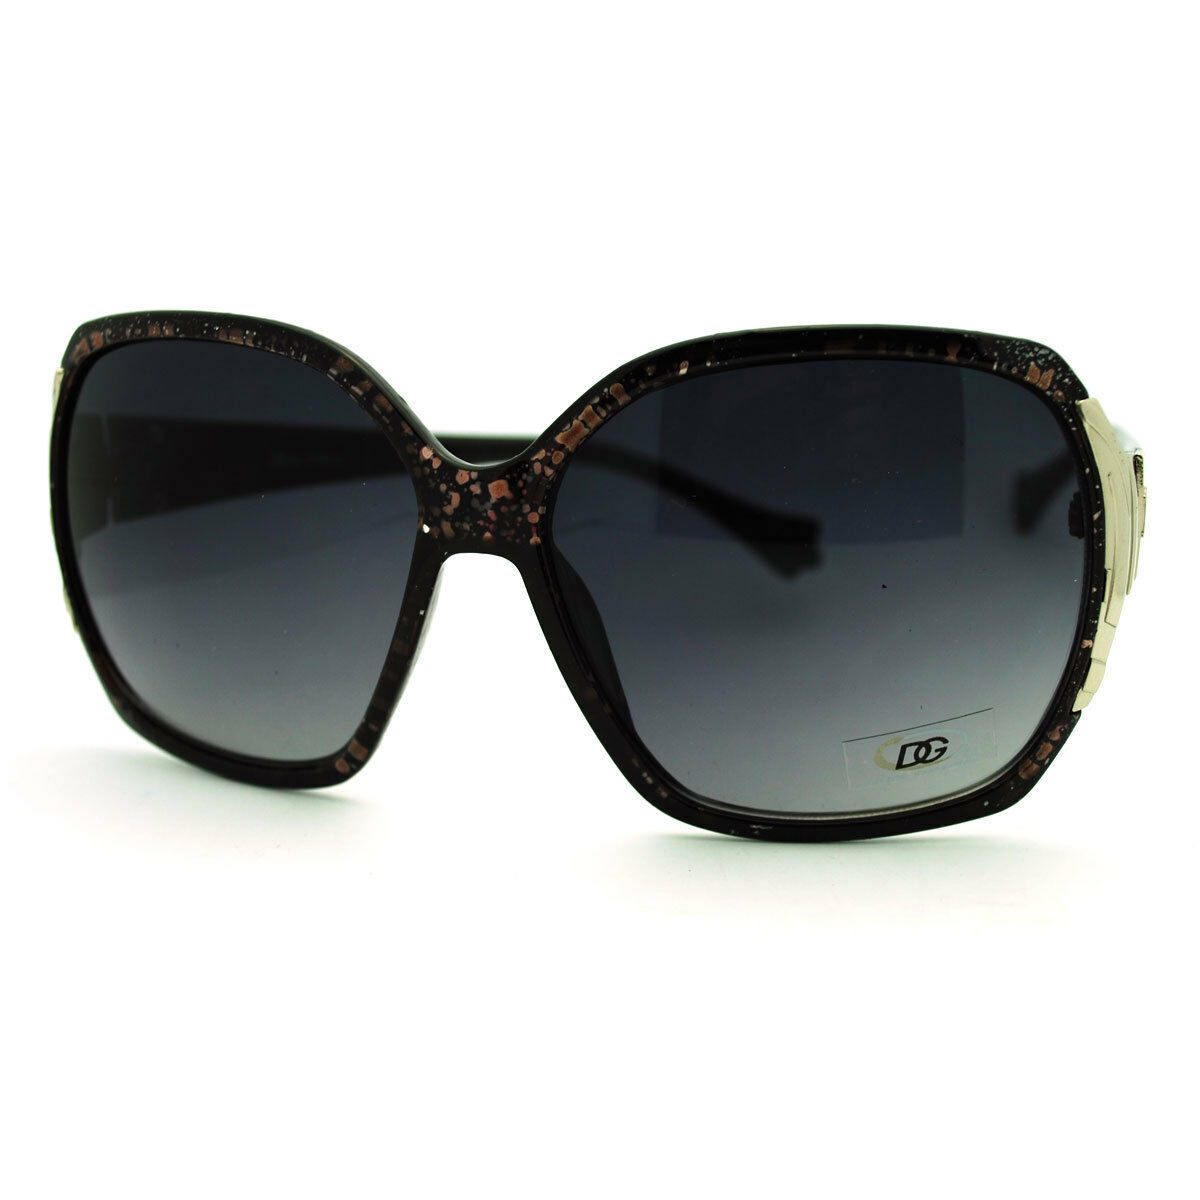 DG Eyewear Oversize Designer Fashion Metal Hinge Foliage Arm Butterfly Sunglass